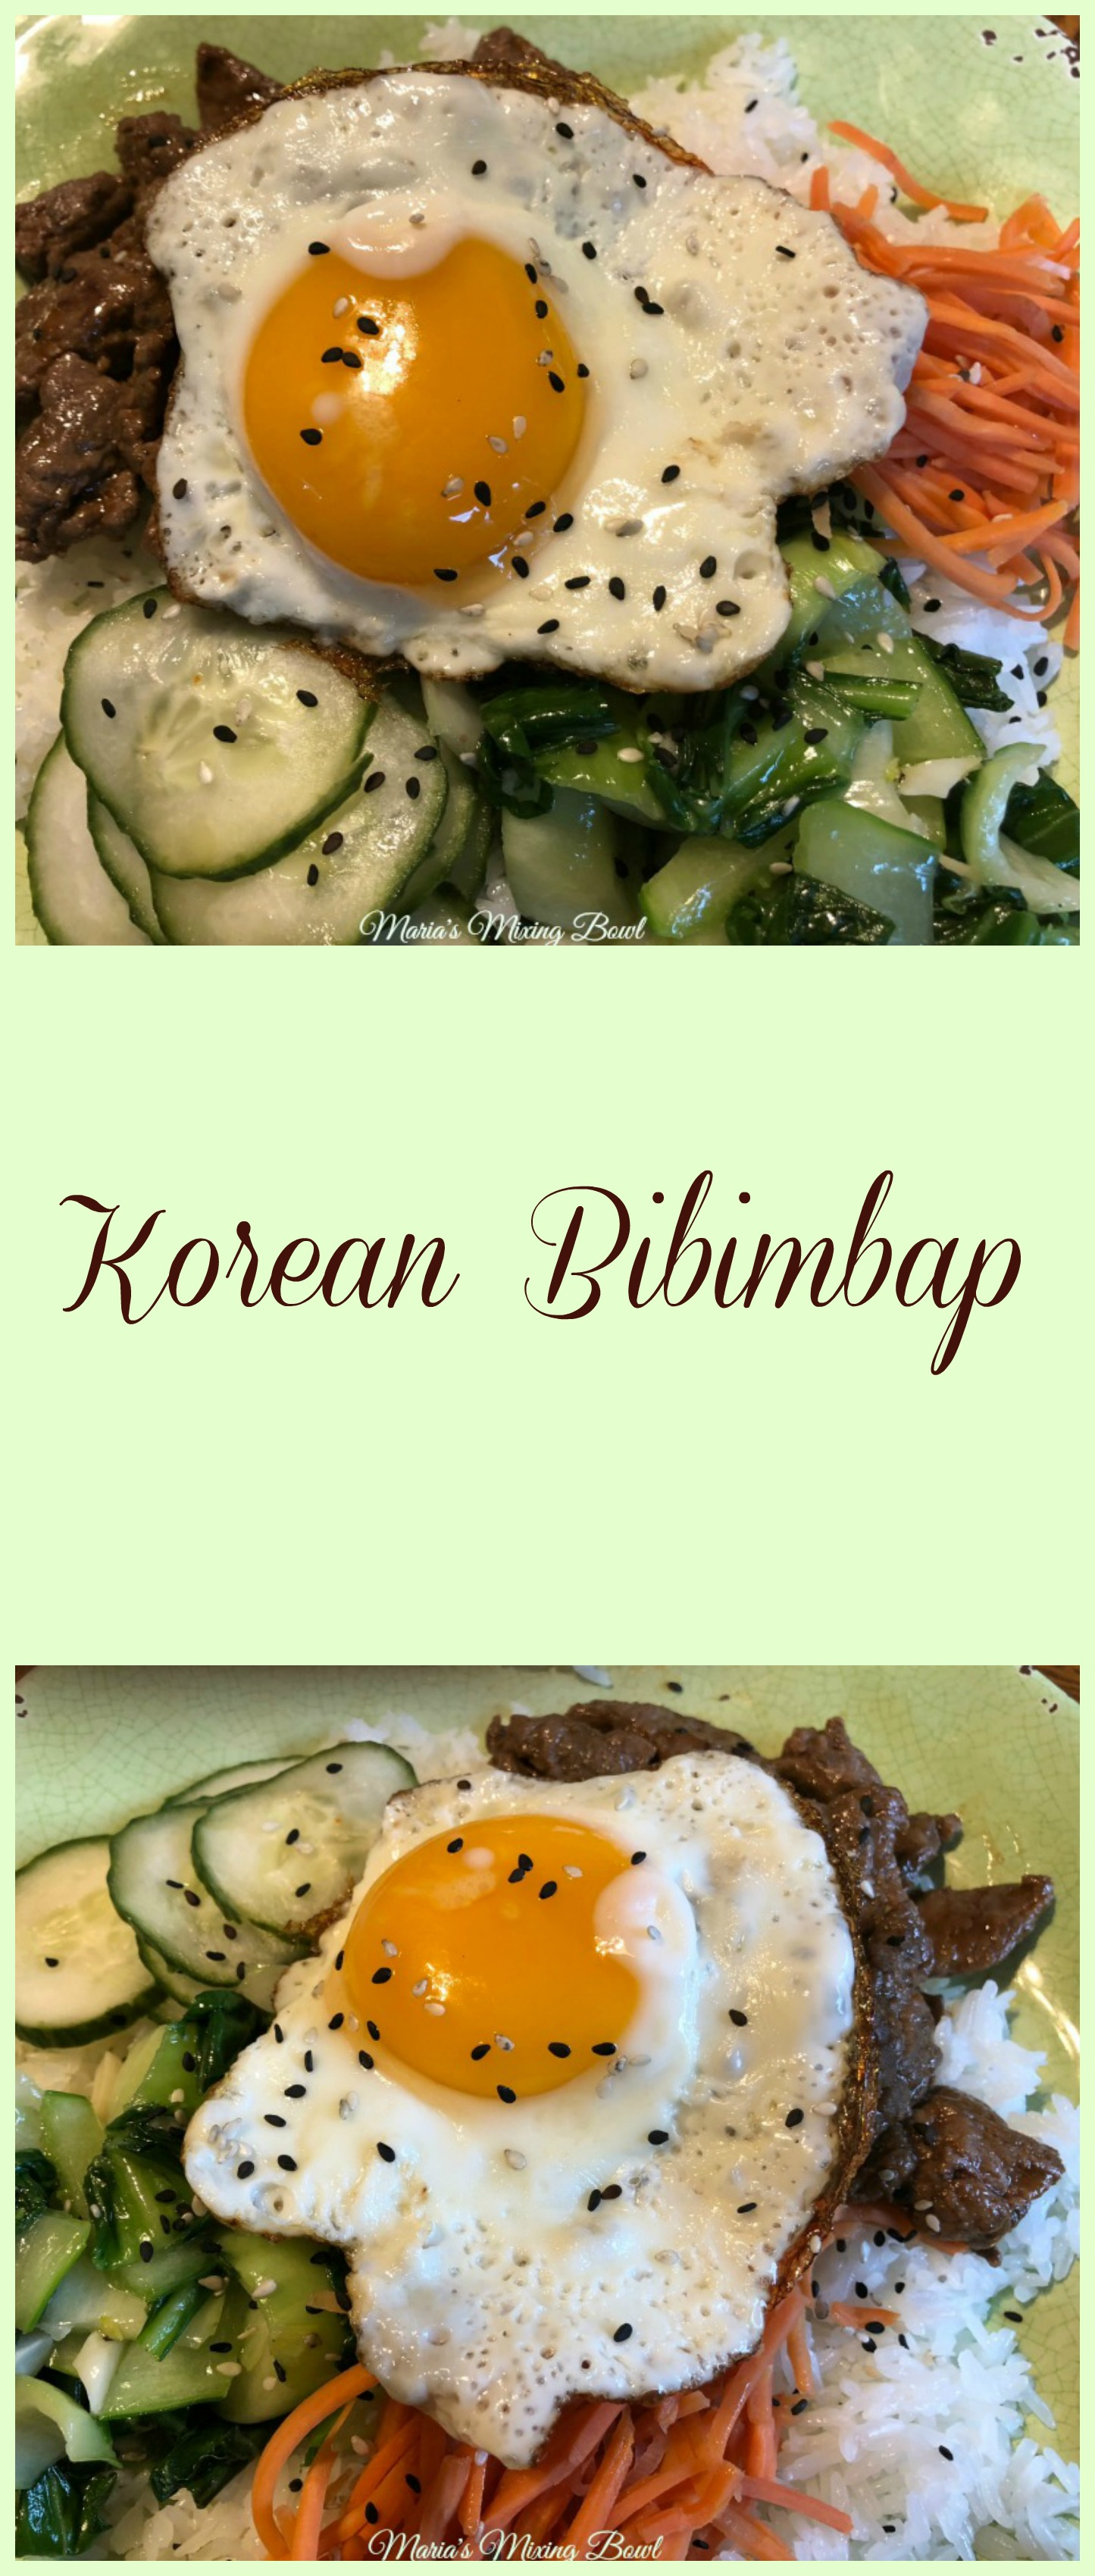 Korean Bibimbap -If you've never heard of Bibimbap, it's a Korean dish that combines rice, seasoned vegetables, meat, egg, and a variety of other toppings. This is such an easy dish to make and perfect for a weeknight meal .